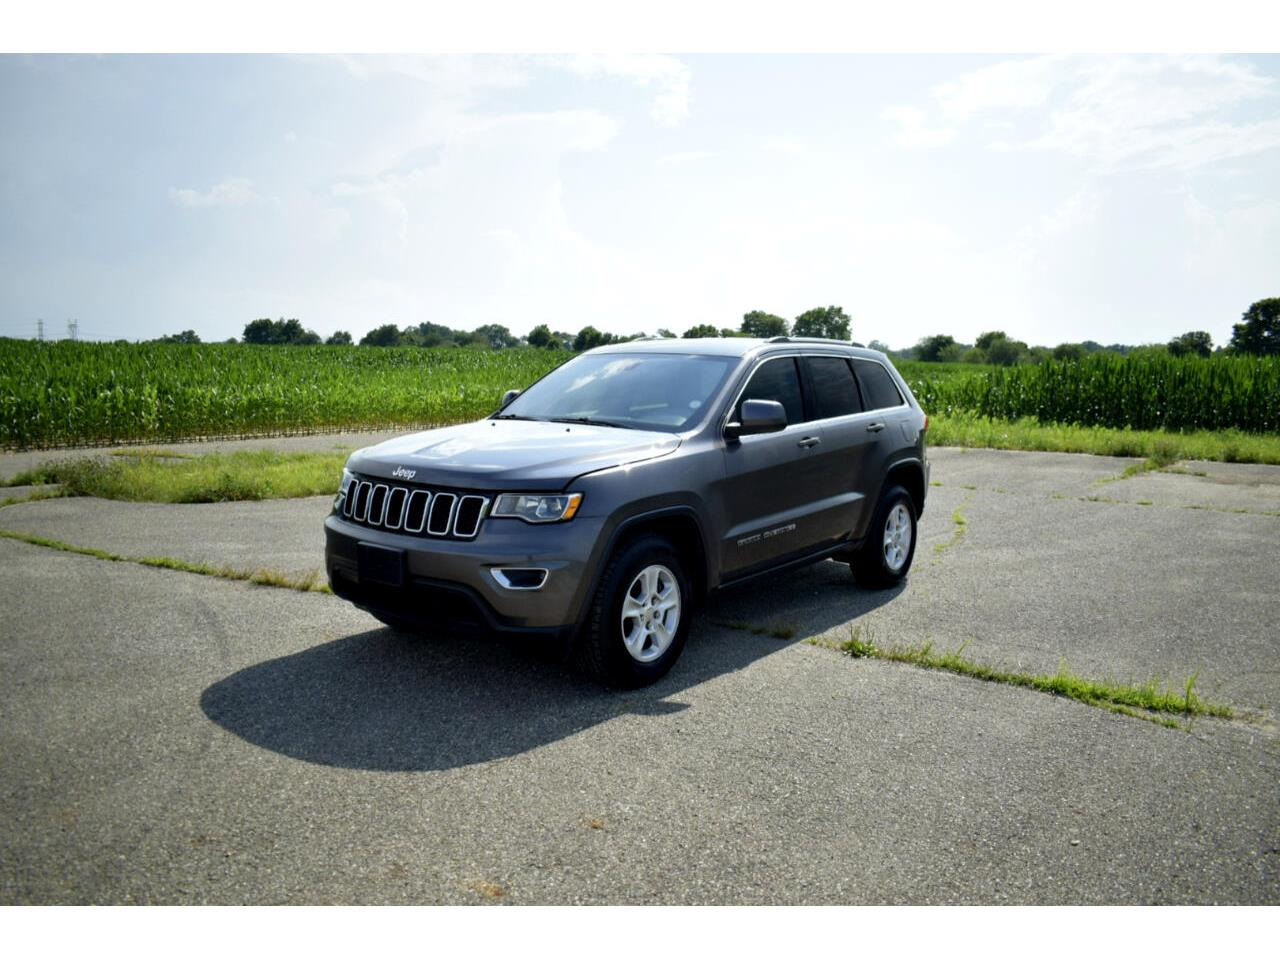 2017 Jeep Grand Cherokee (CC-1362481) for sale in Cicero, Indiana